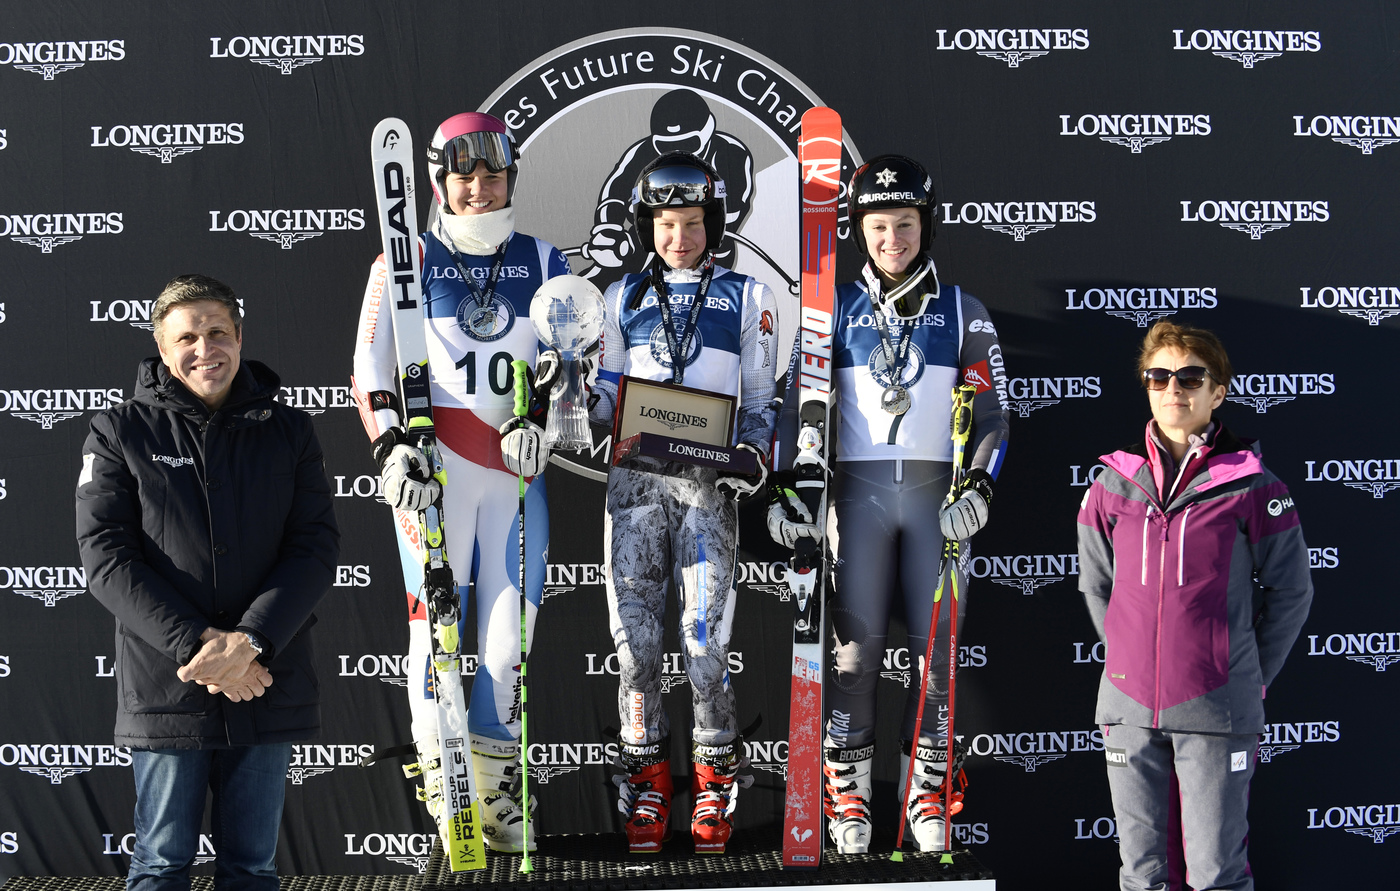 Longines Alpine Skiing Event: LONGINES FUTURE SKI CHAMPIONS - THE BEST YOUNG FEMALE SKIERS 30